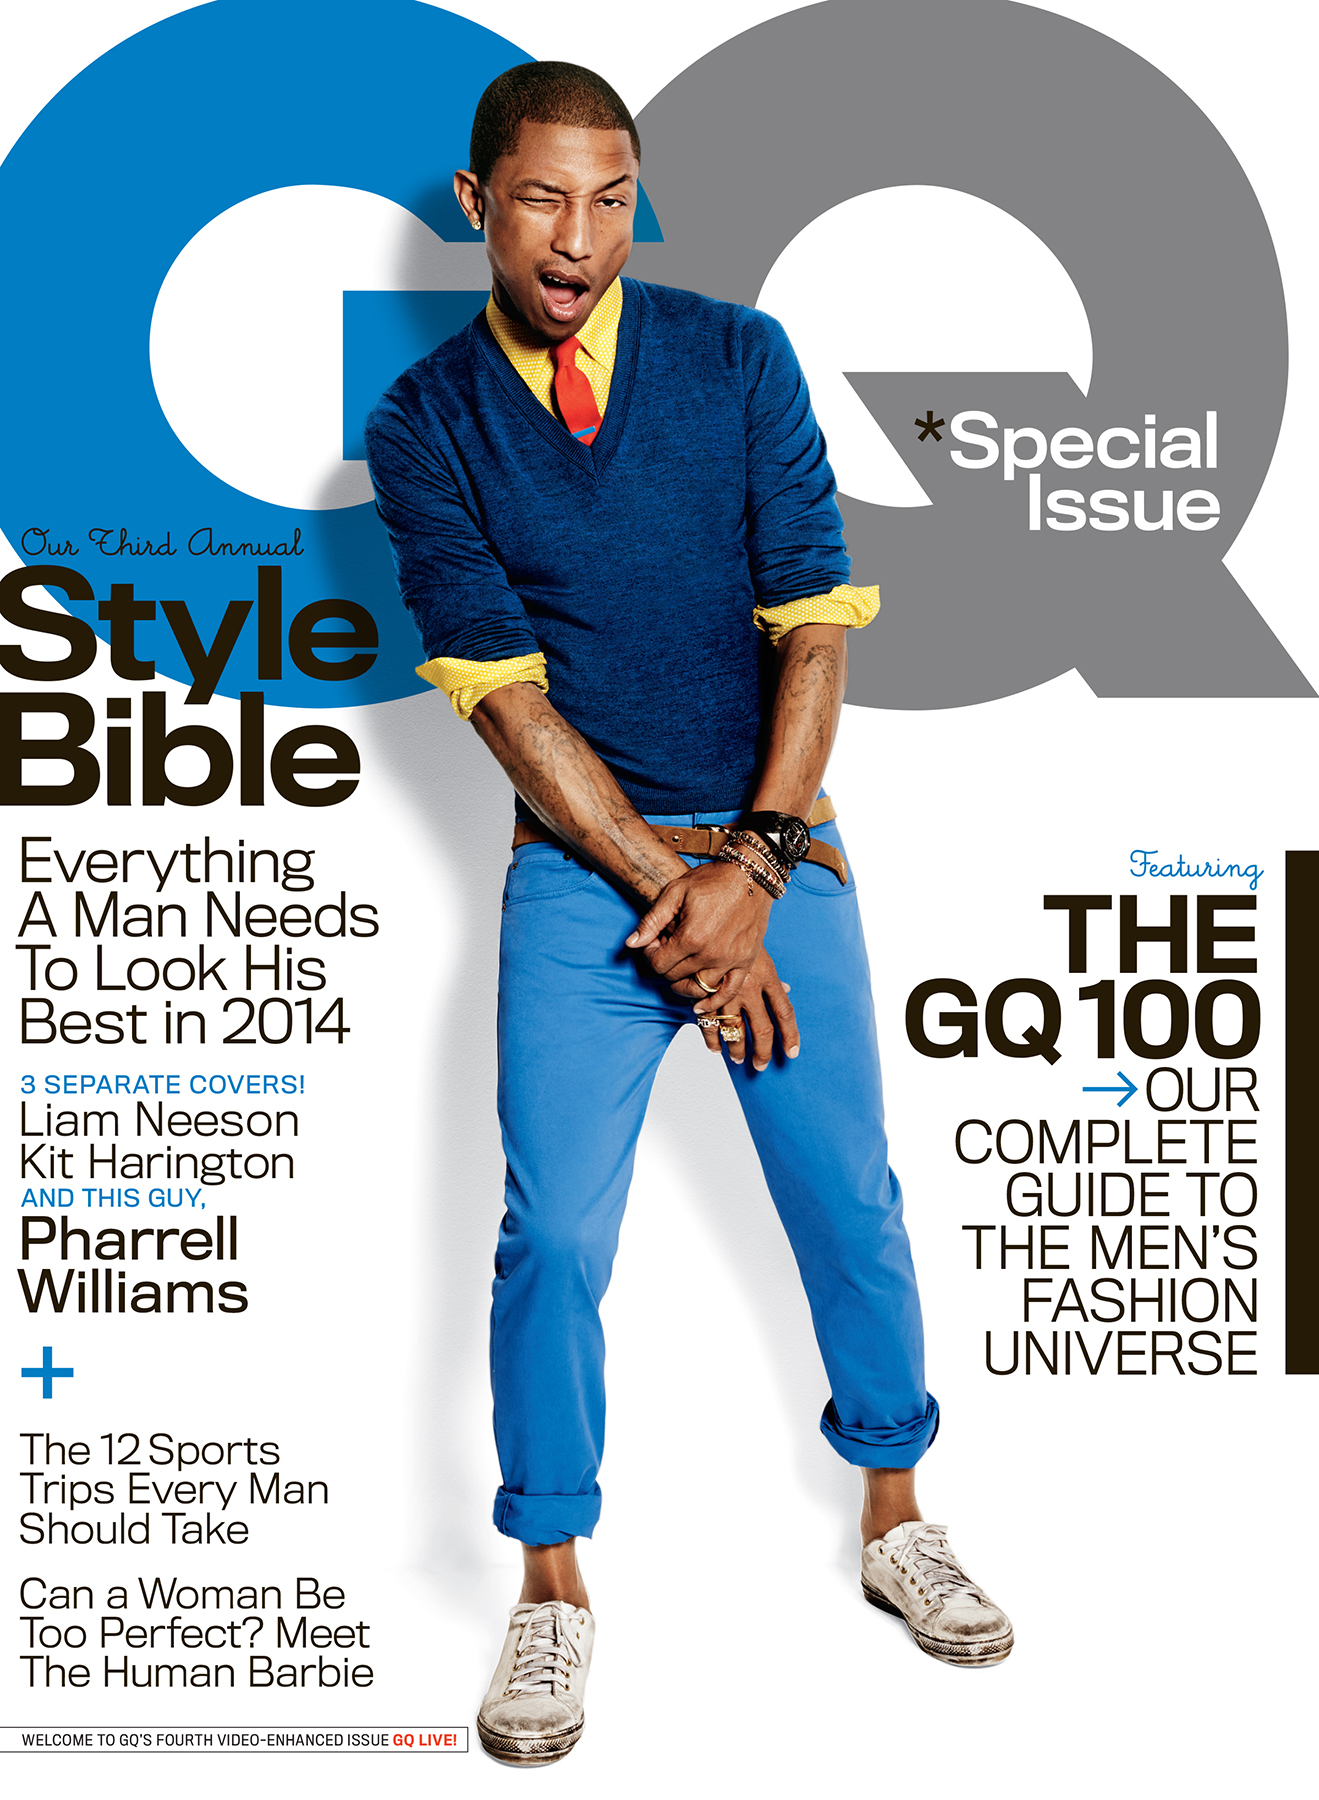 Pharrell Williams on the Cover of GQ